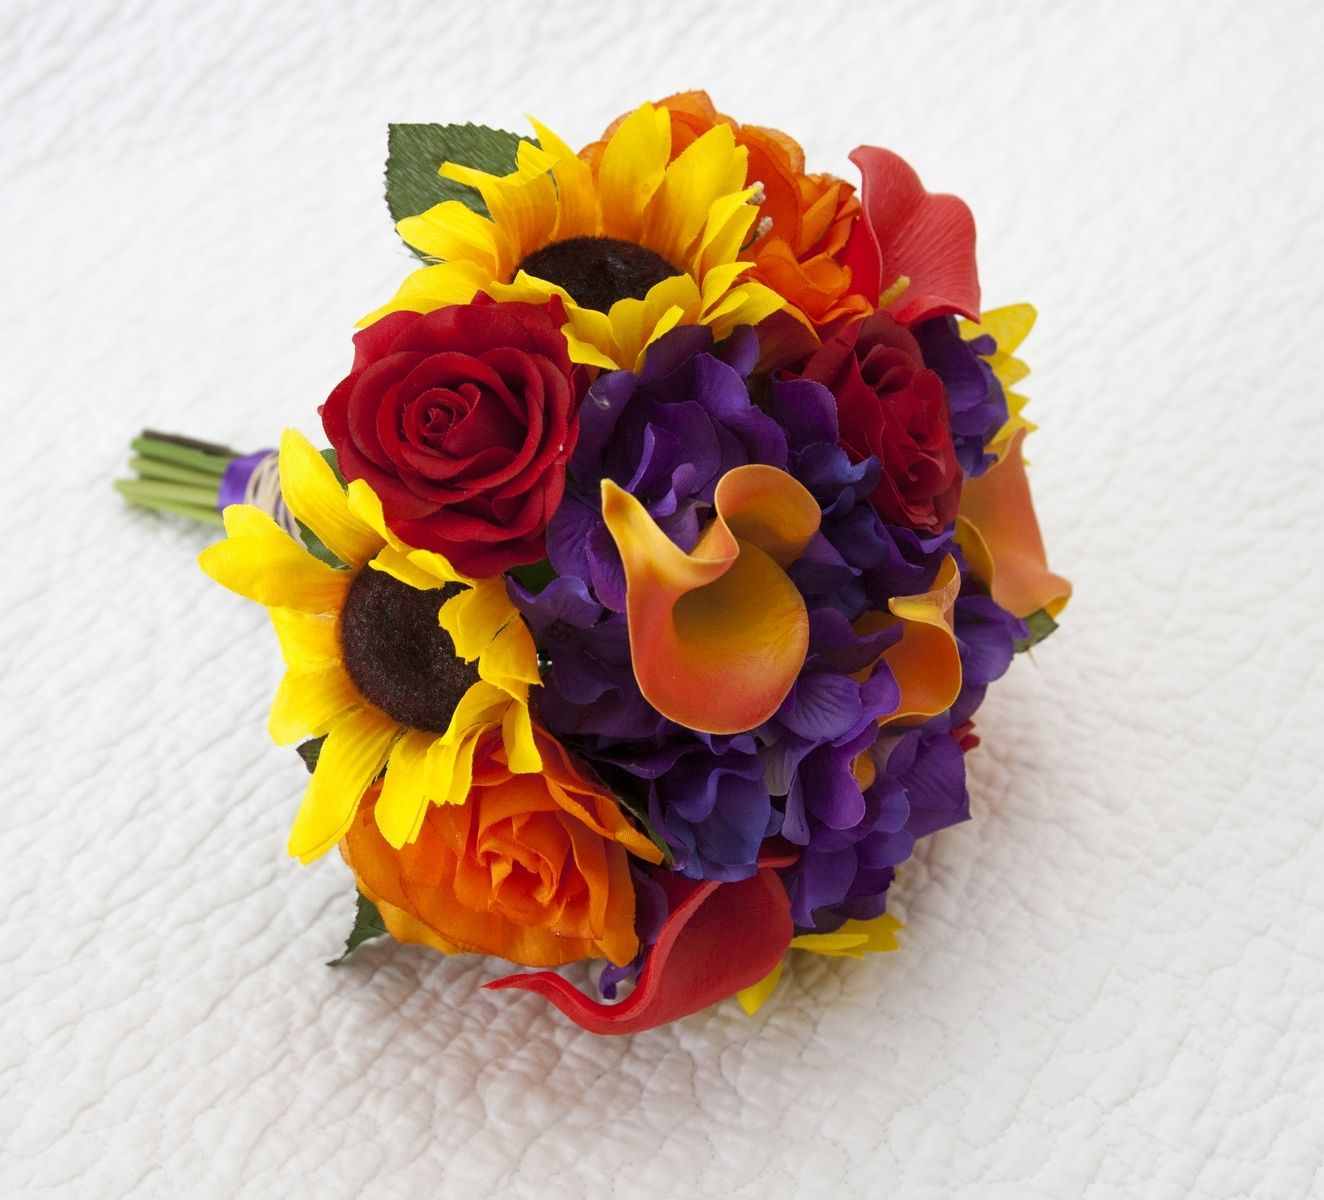 Fall Wedding Flowers With Sunflowers - Flowers Healthy